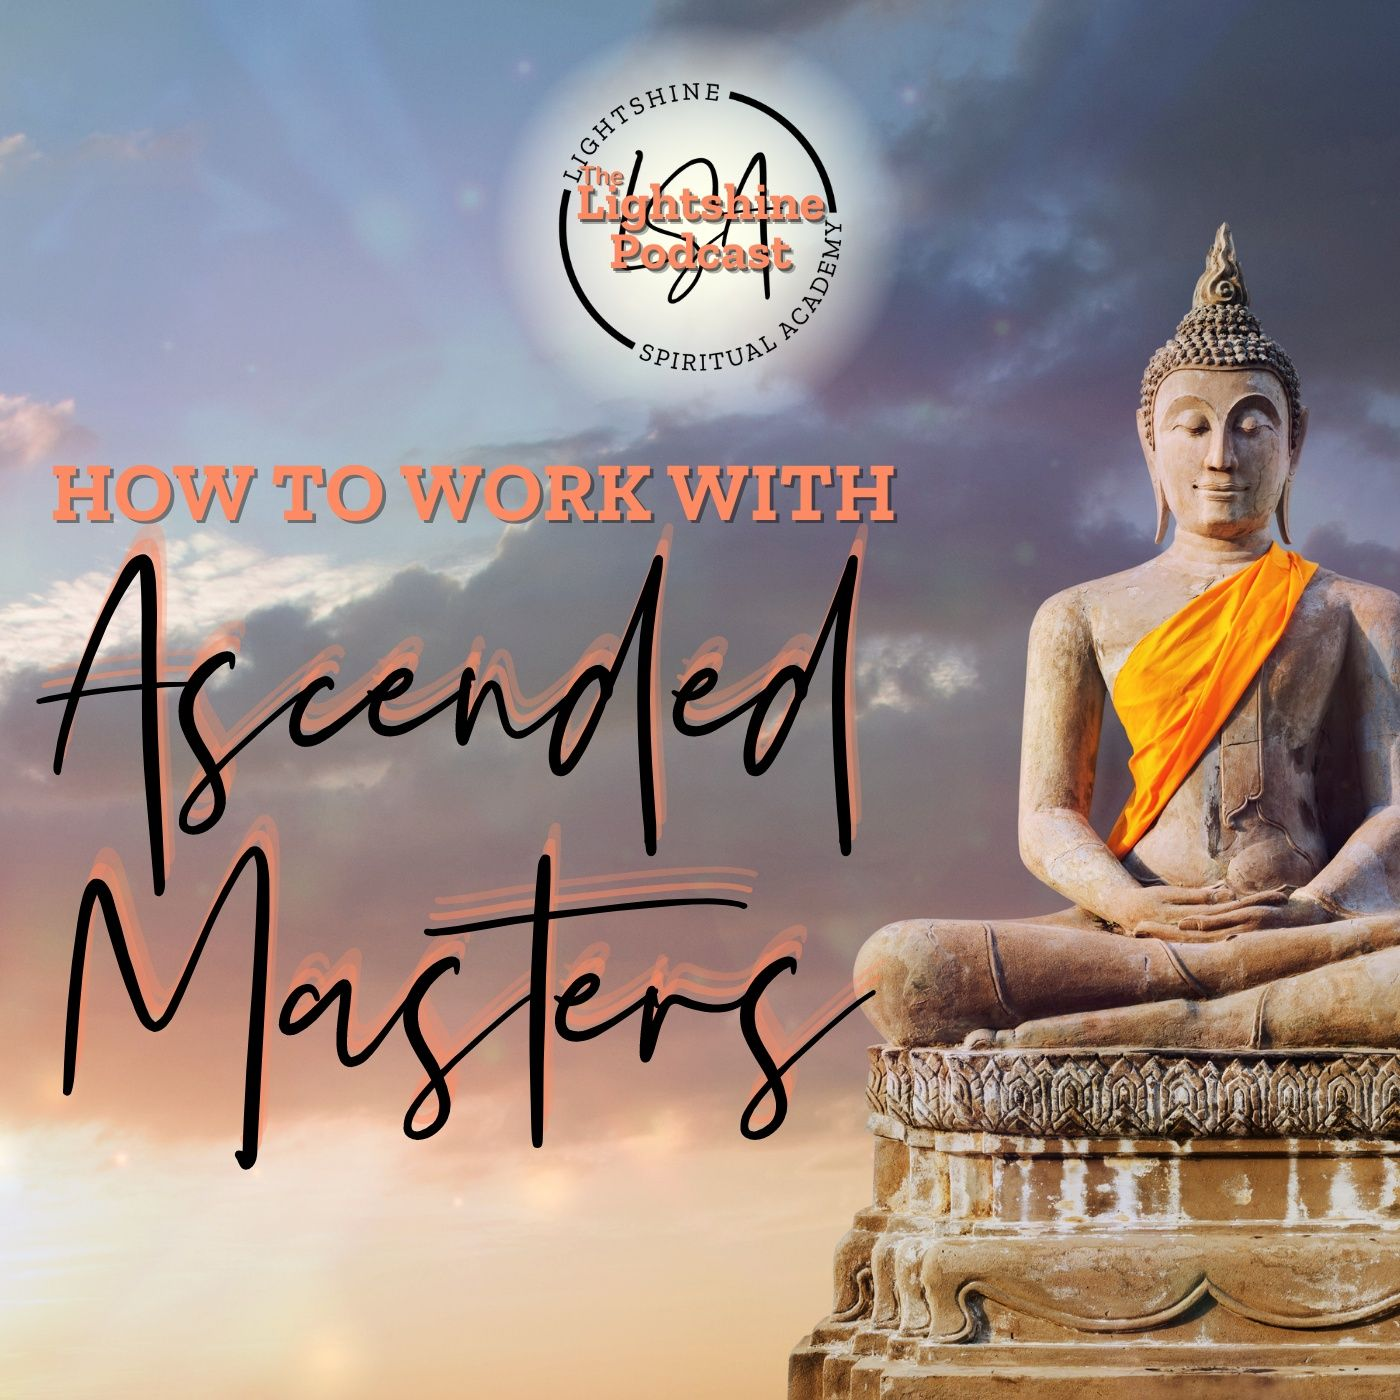 28: How to Work with ASCENDED MASTERS